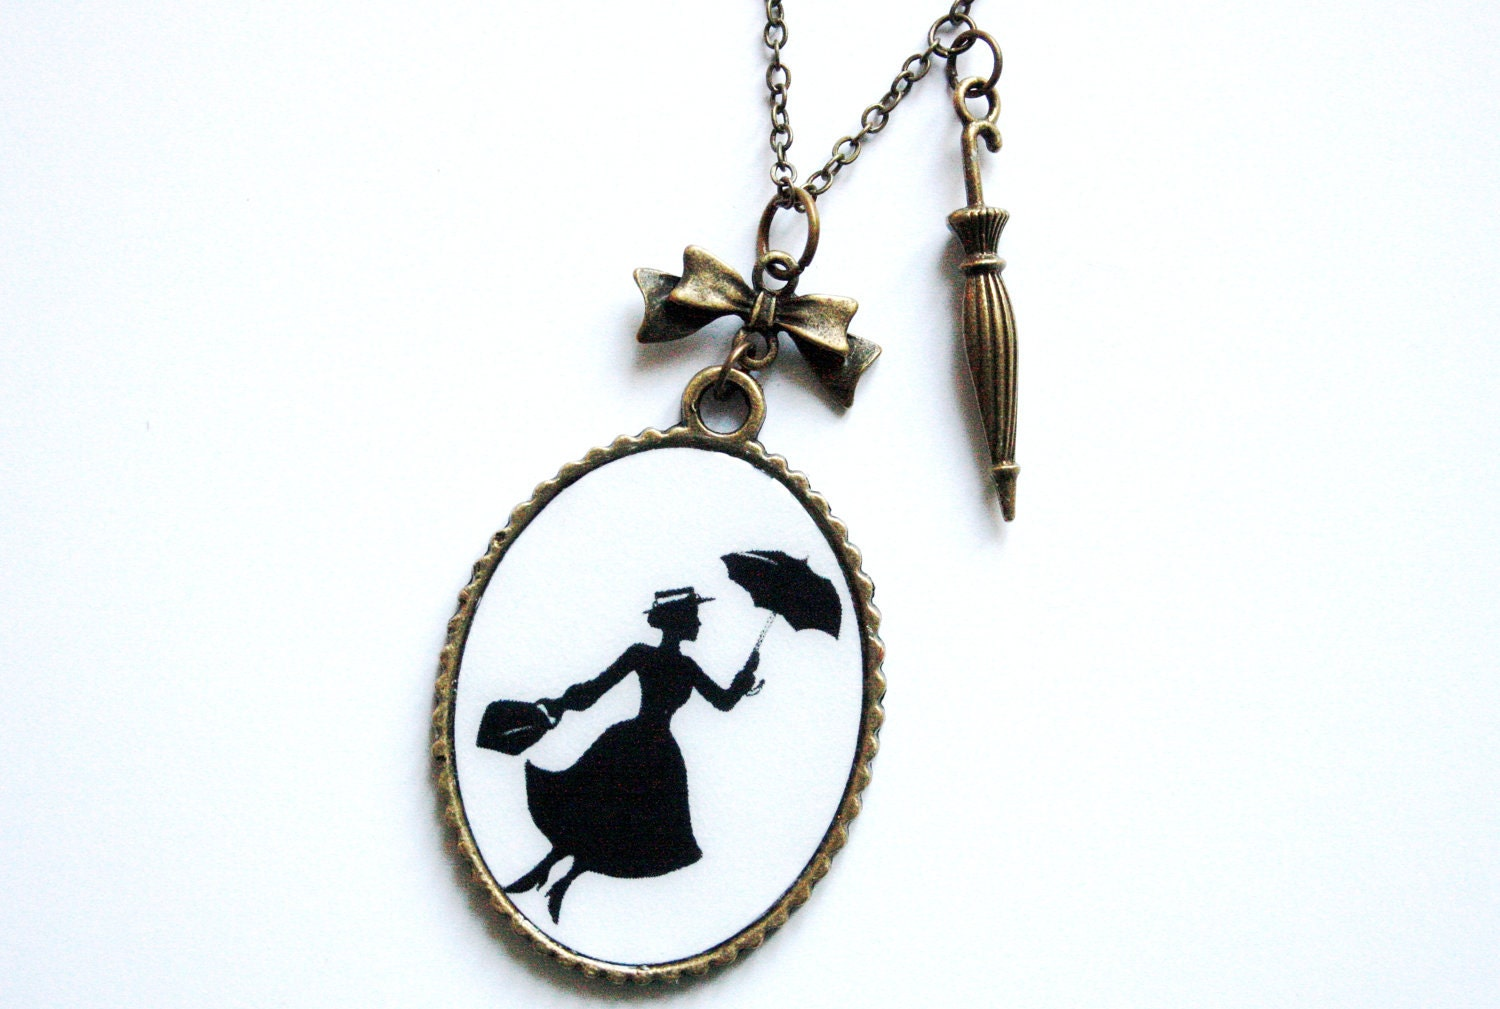 Mary Poppins Chimney Sweep Silhouette Images Miss Poppins Silhouett...